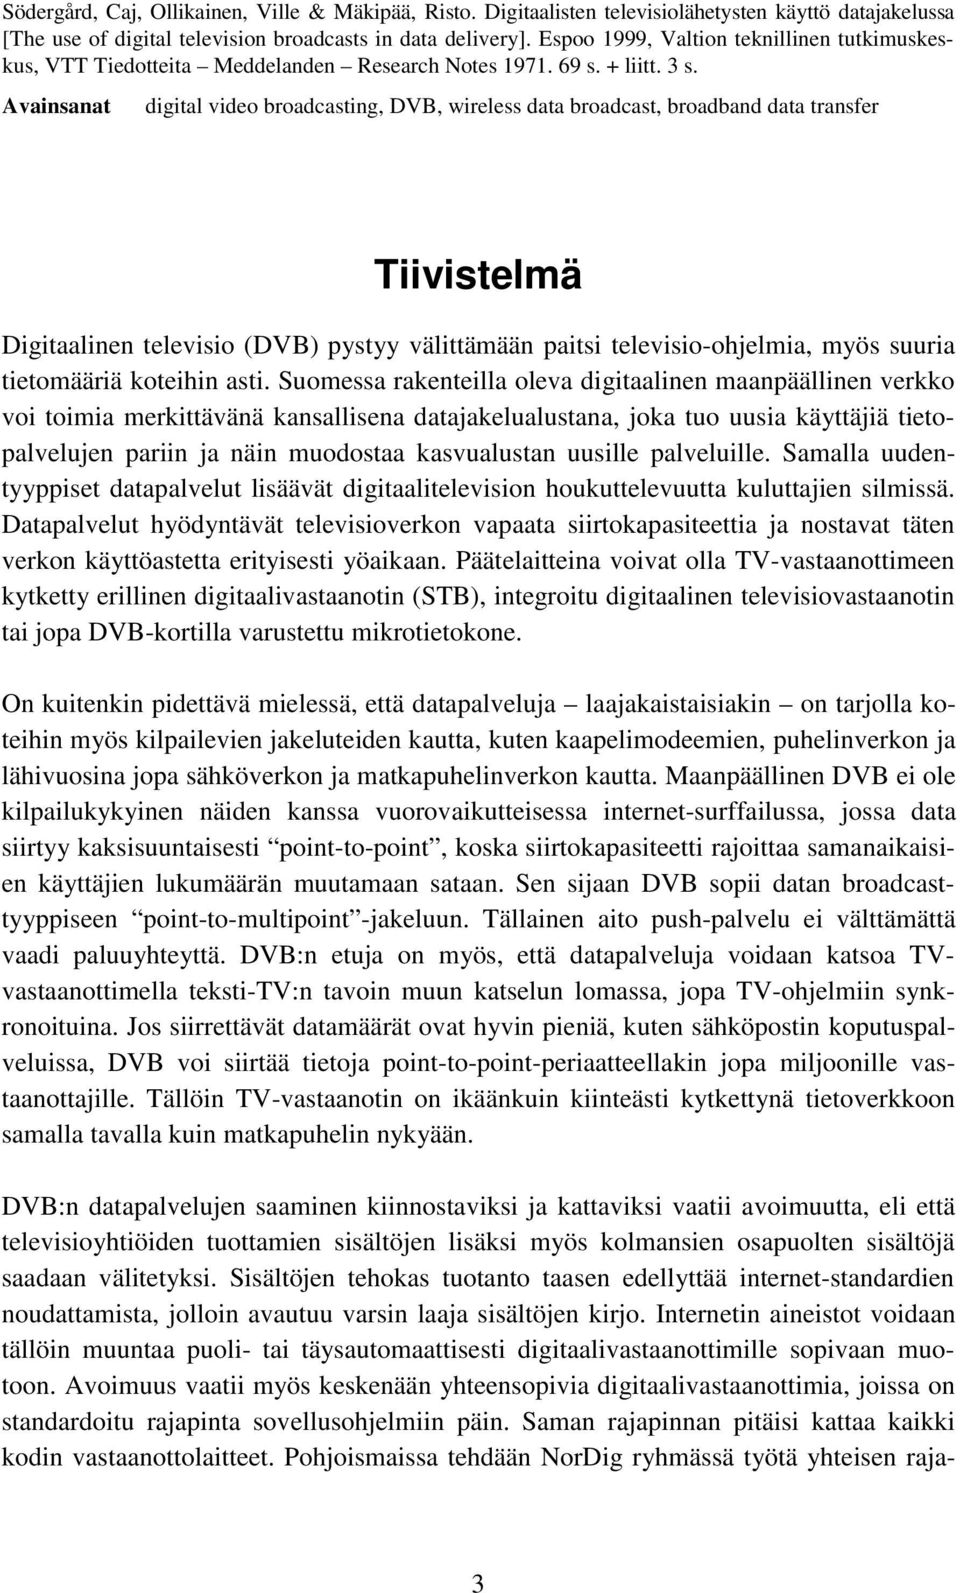 Avainsanat digital video broadcasting, DVB, wireless data broadcast, broadband data transfer Tiivistelmä Digitaalinen televisio (DVB) pystyy välittämään paitsi televisio-ohjelmia, myös suuria